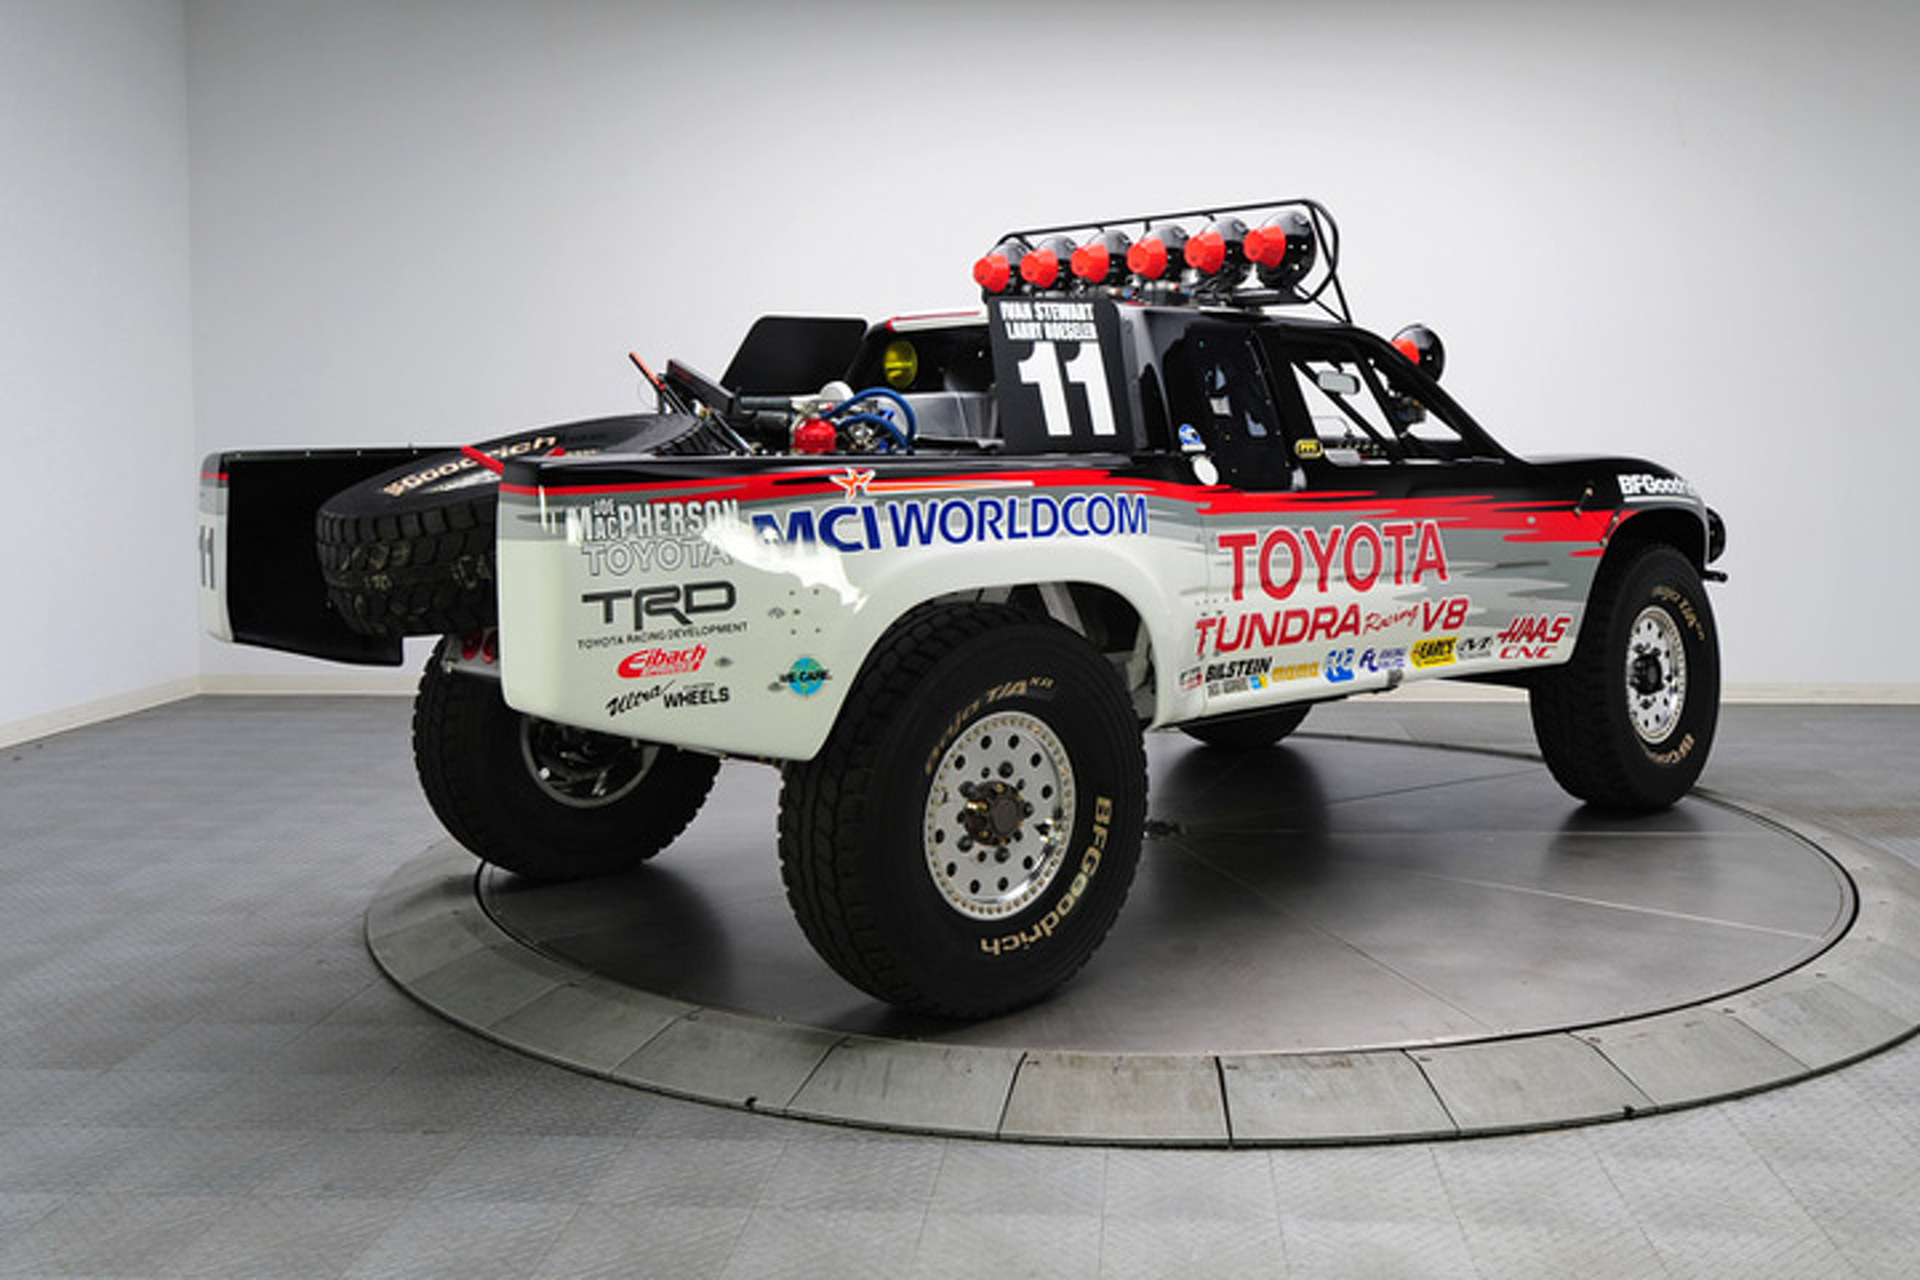 Ivan 'Ironman' Stewart's Baja 1000 Truck Can Be Yours